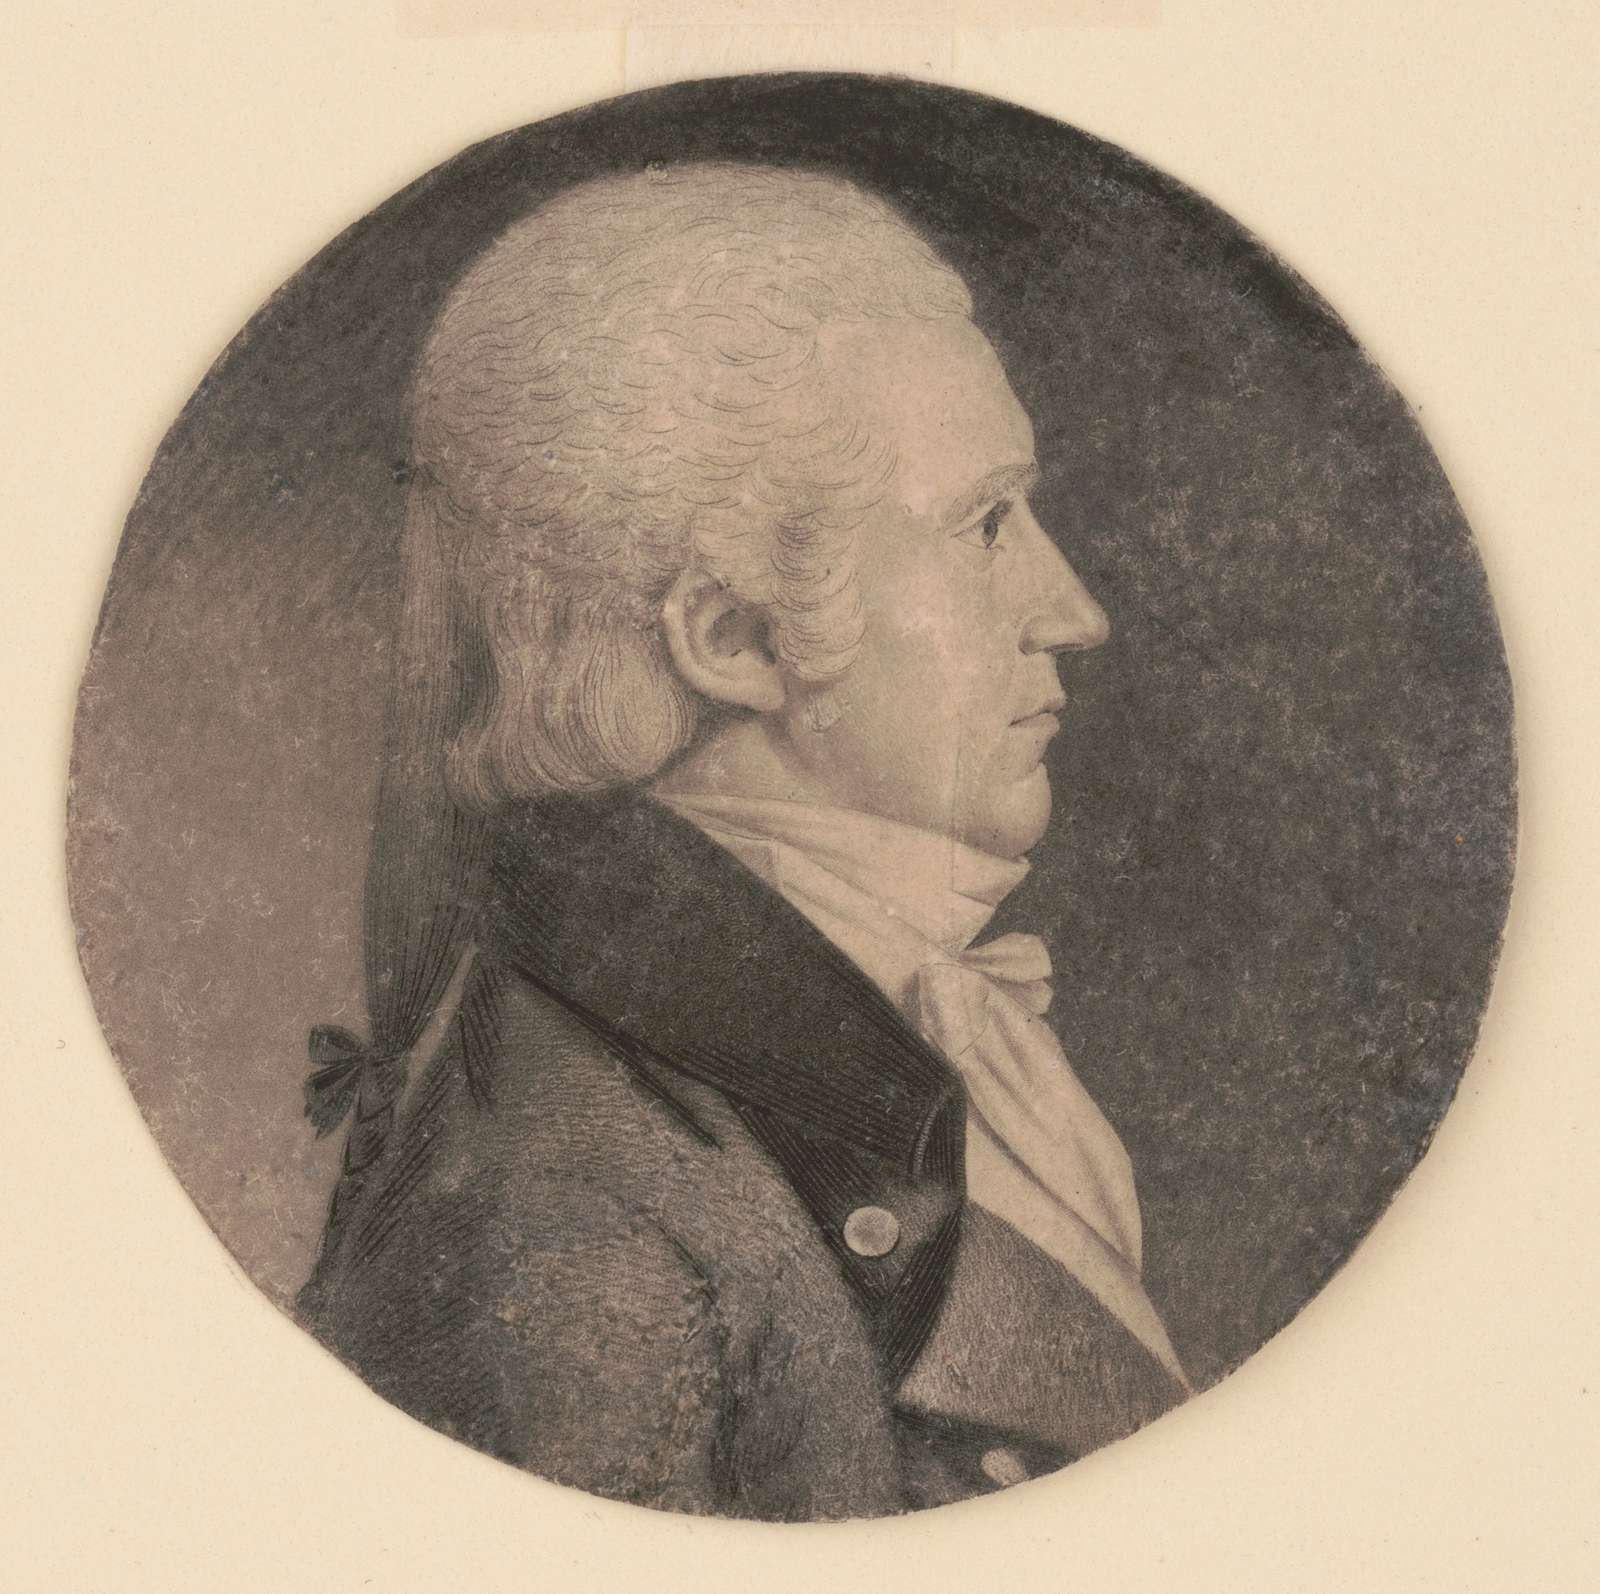 P. Morell, head-and-shoulders portrait, right profile